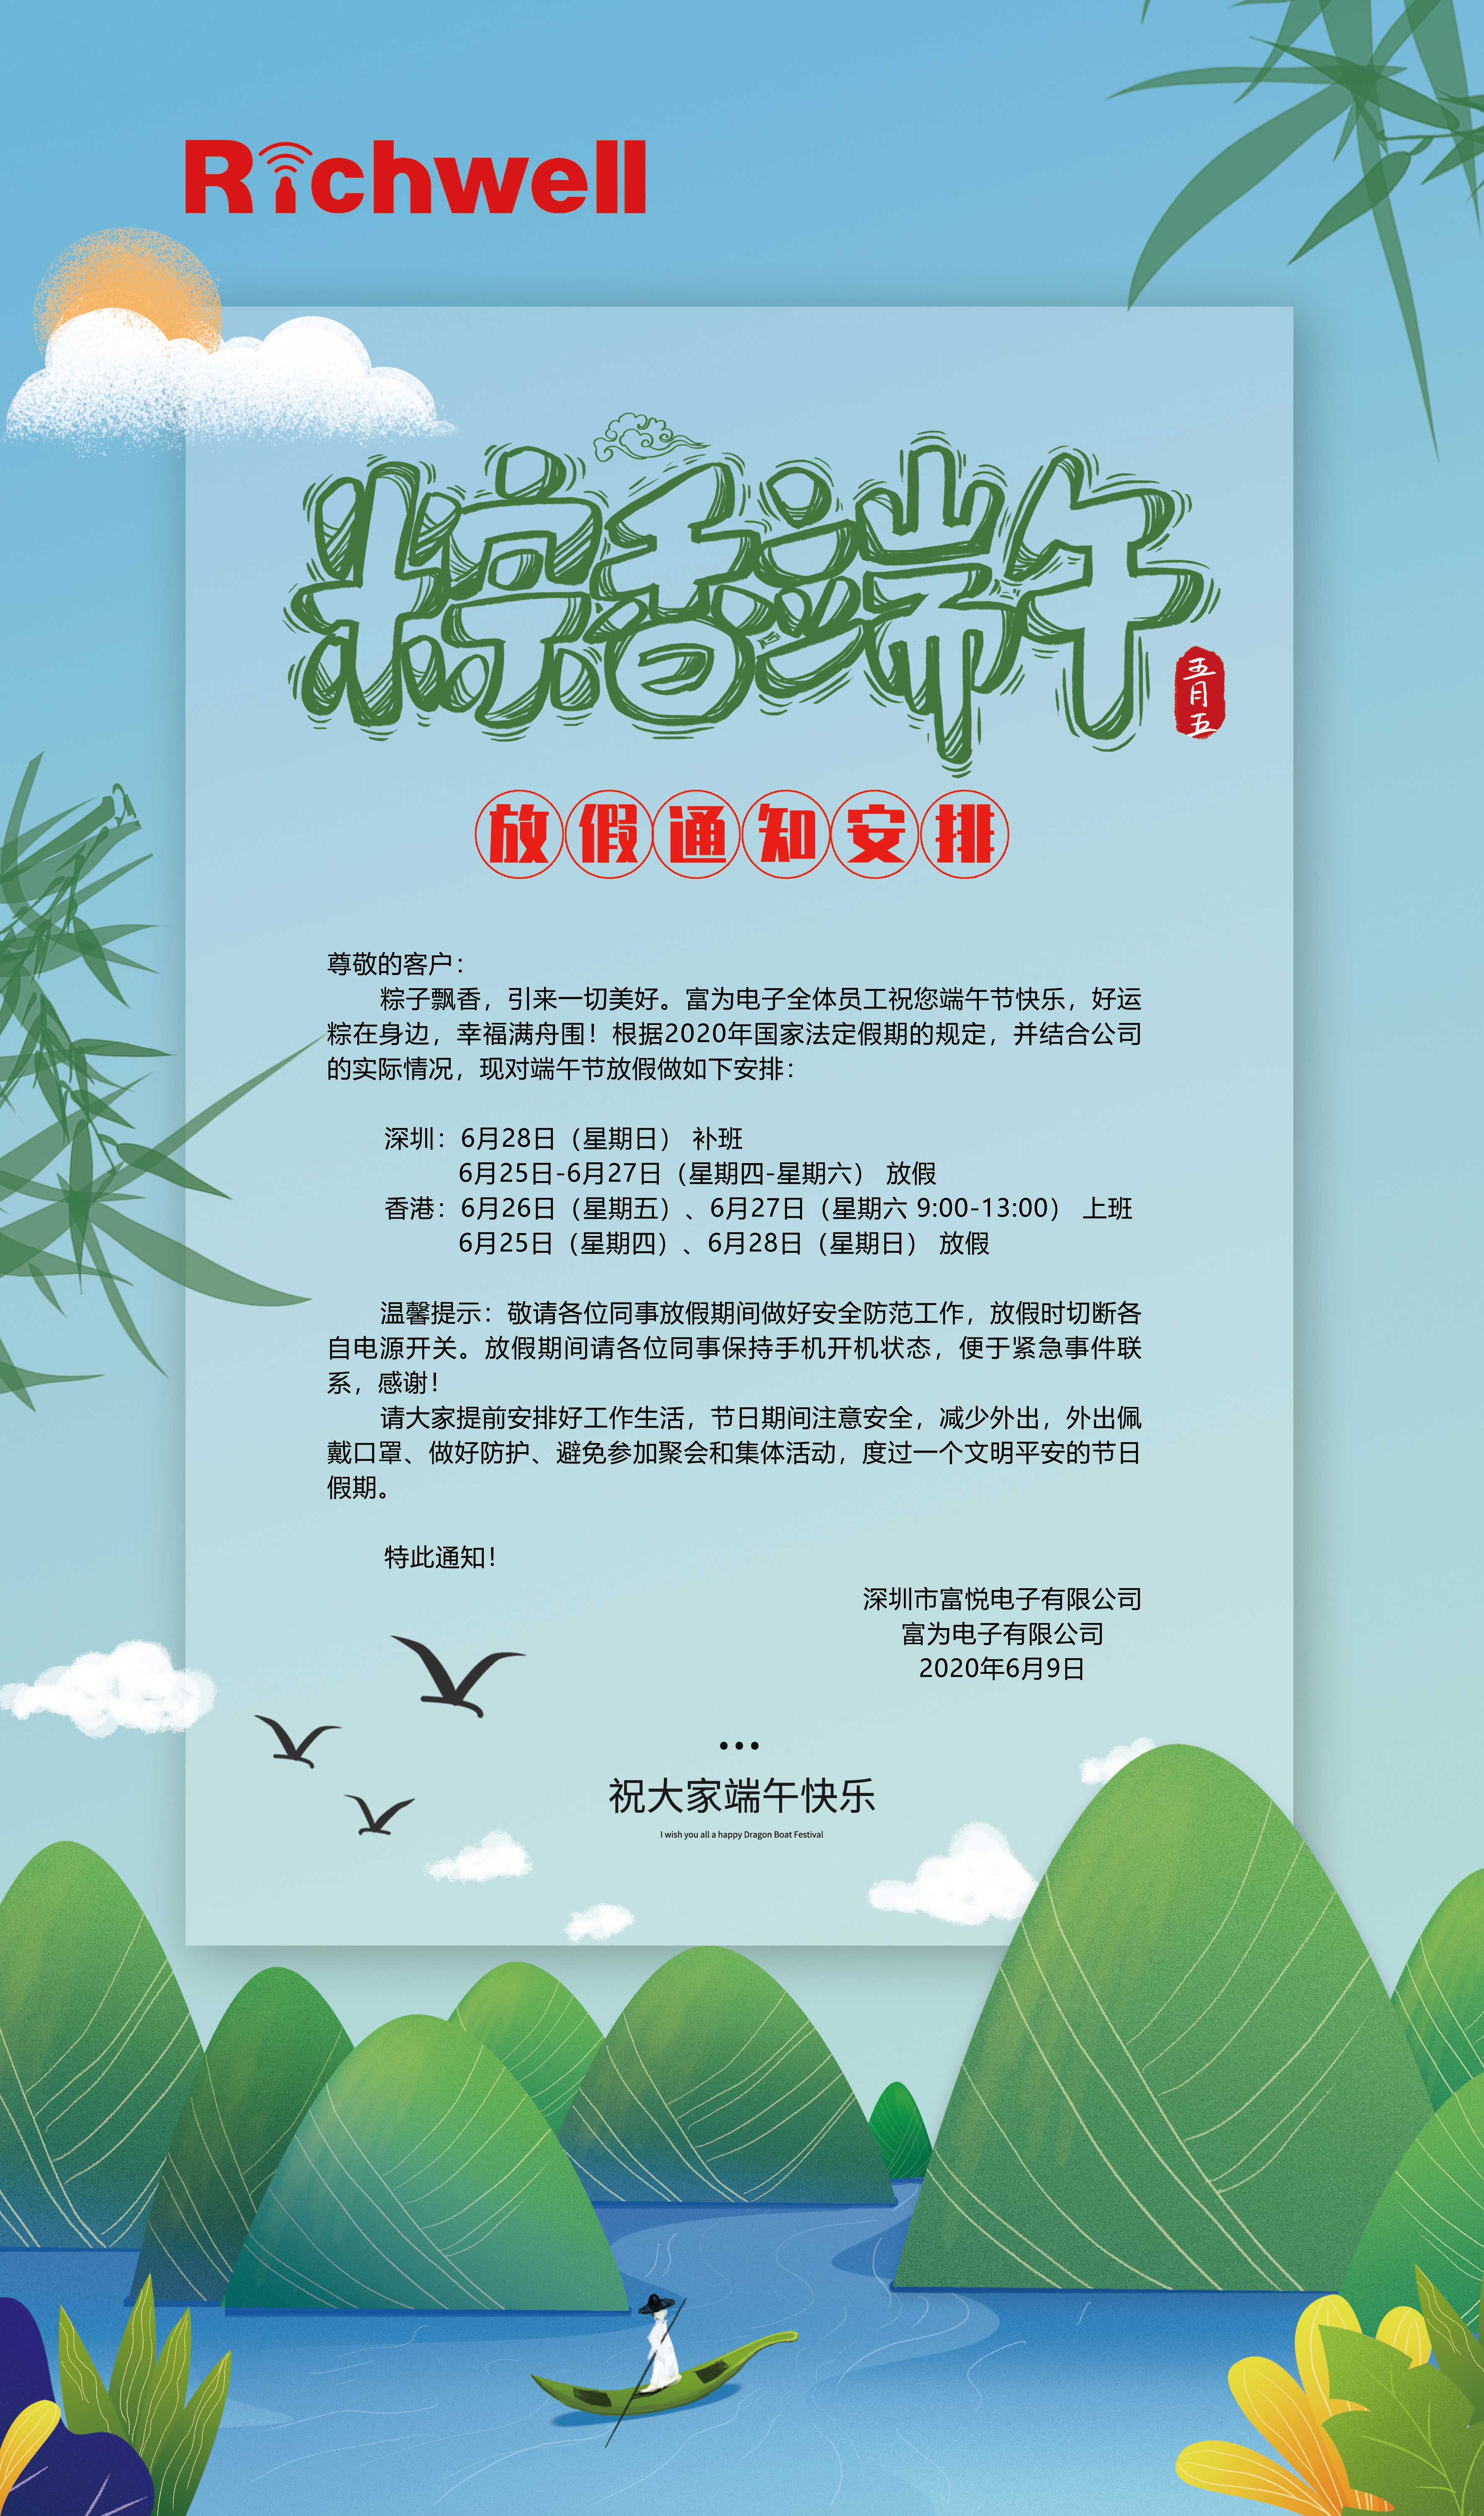 Notice of Dragon Boat Festival holiday in 2020